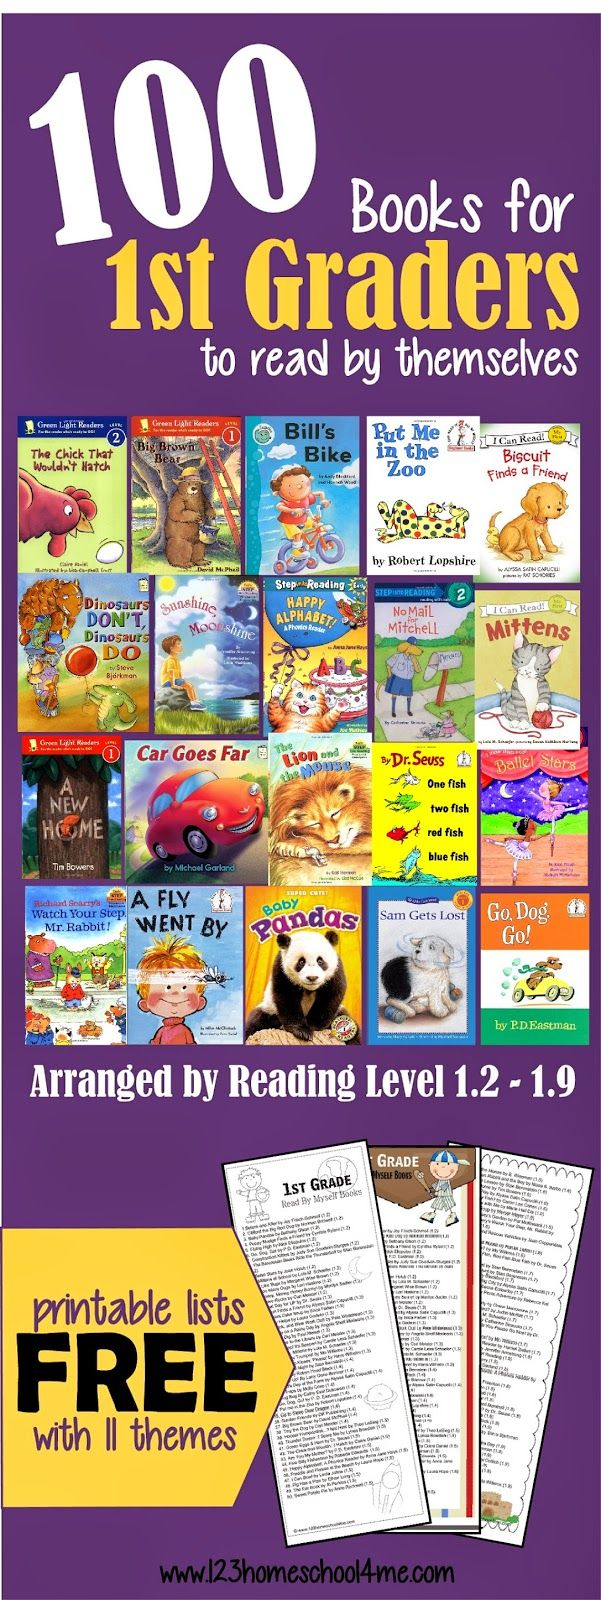 1st grade book list